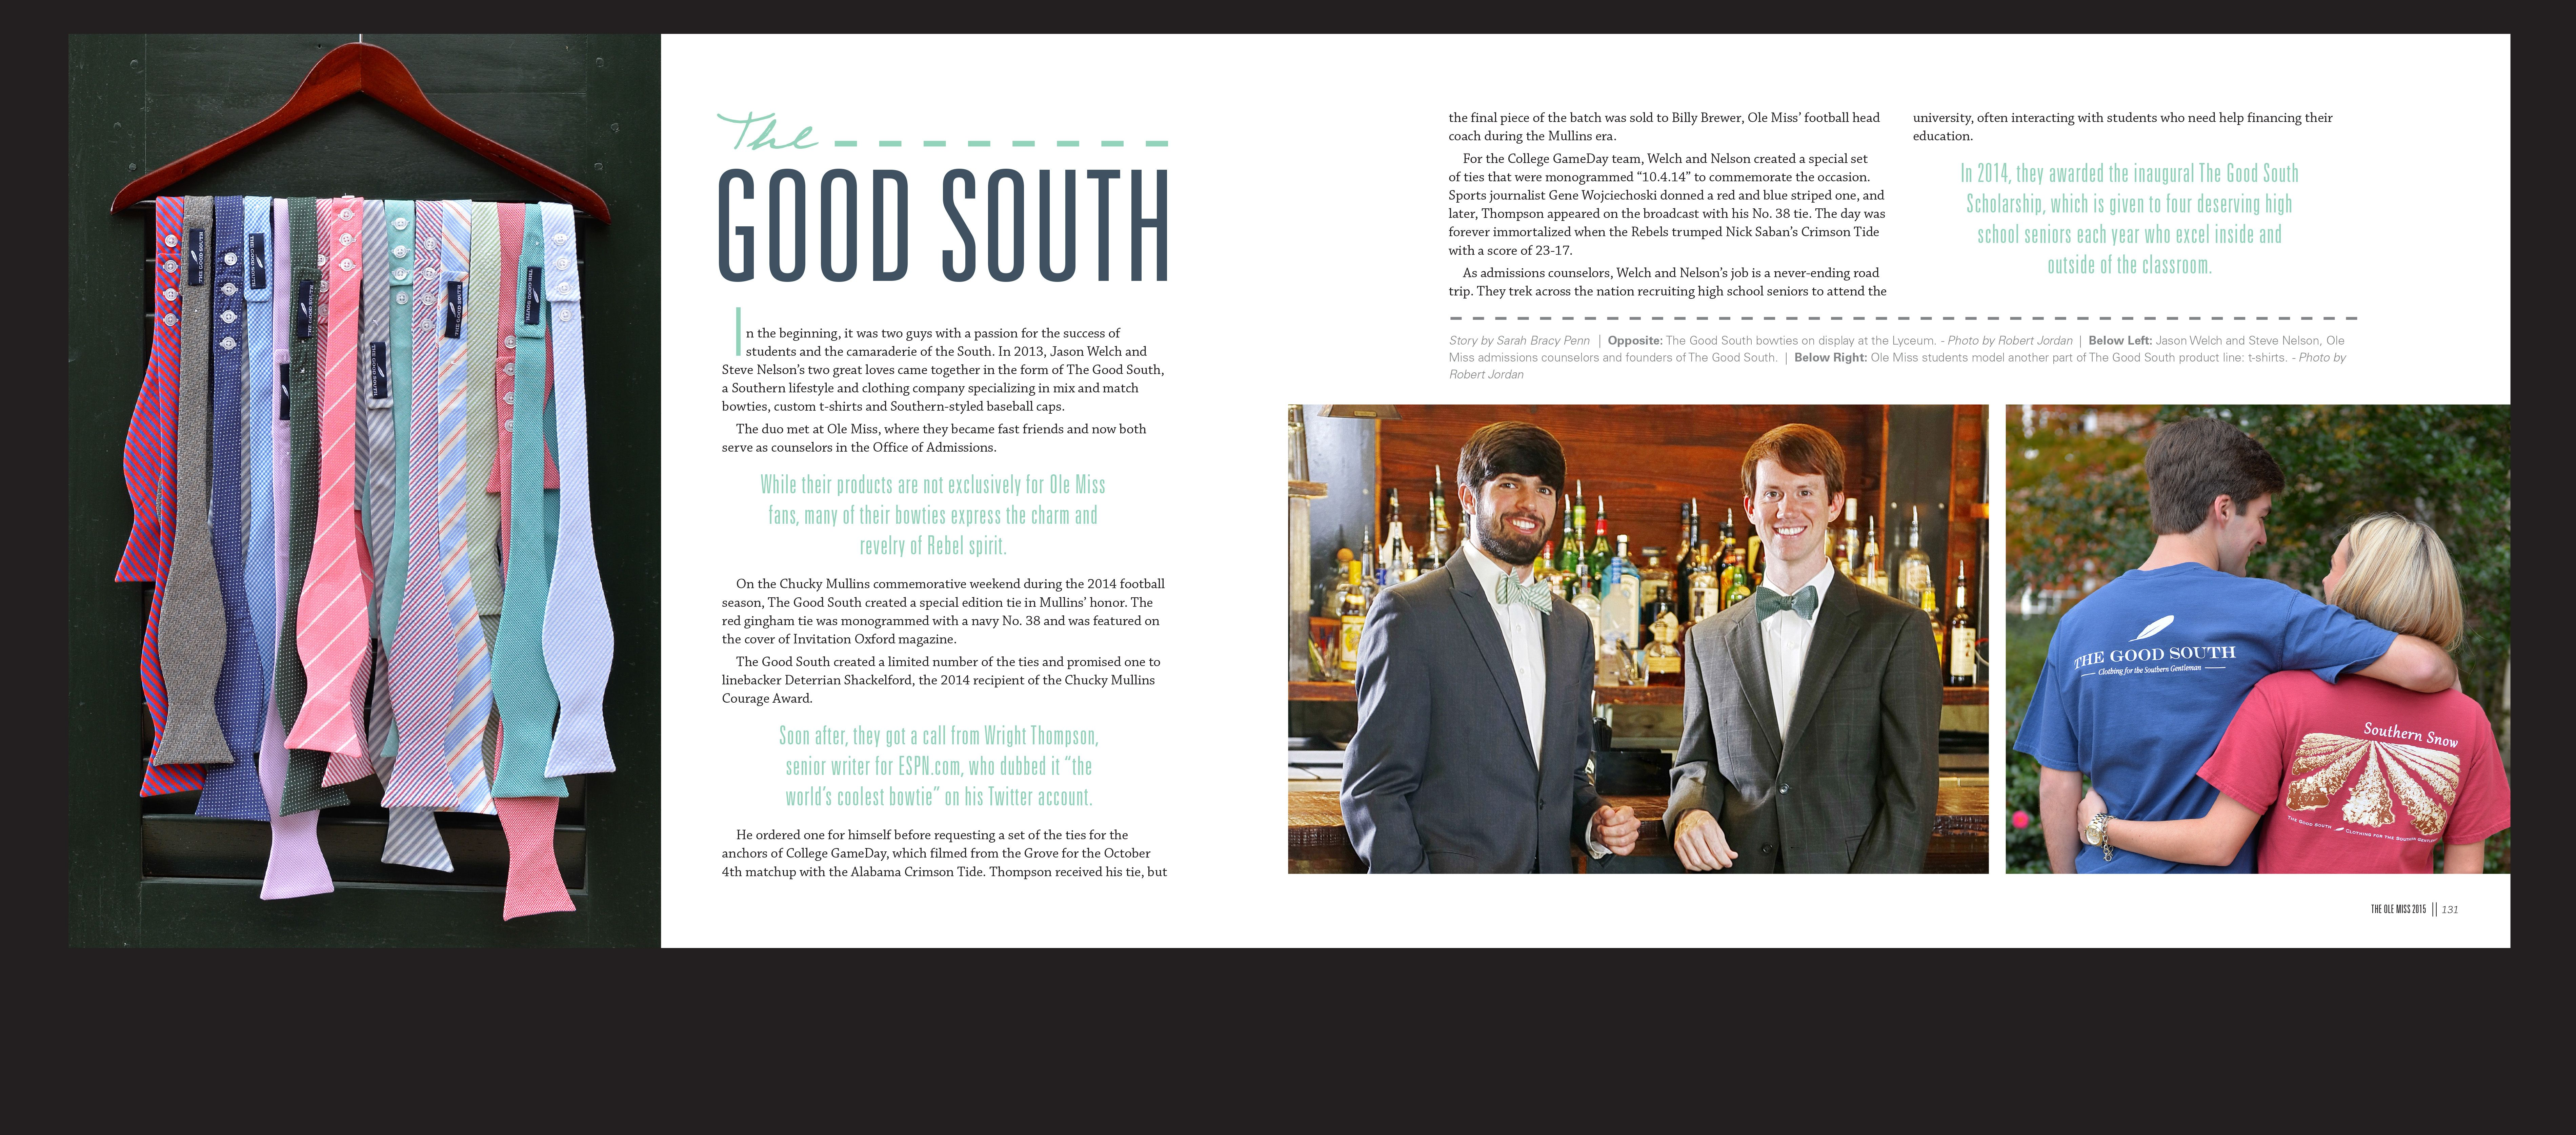 Ole miss gameday colors 2015 - The Good South In The University Of Mississippi S 2015 Yearbook The Ole Miss